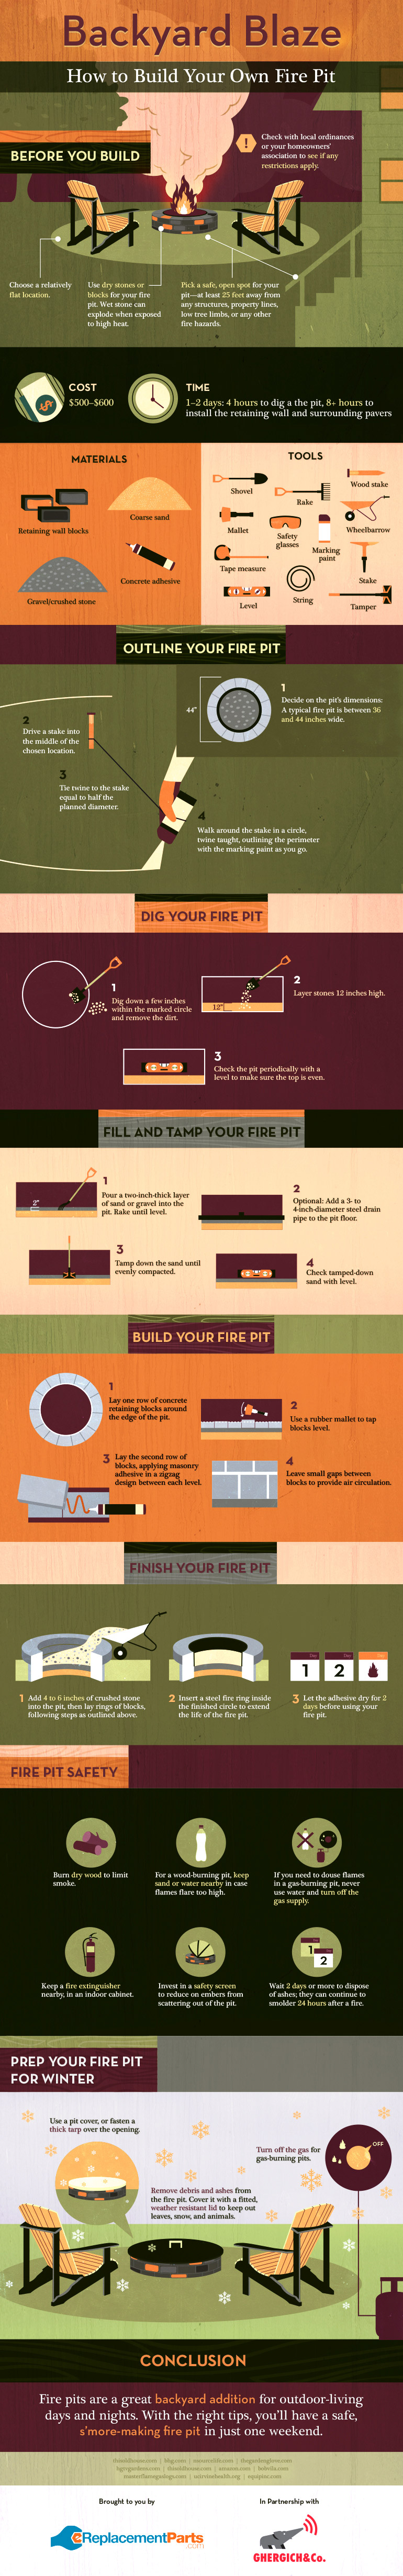 Backyard Blaze: How to Build Your Own Fire Pit